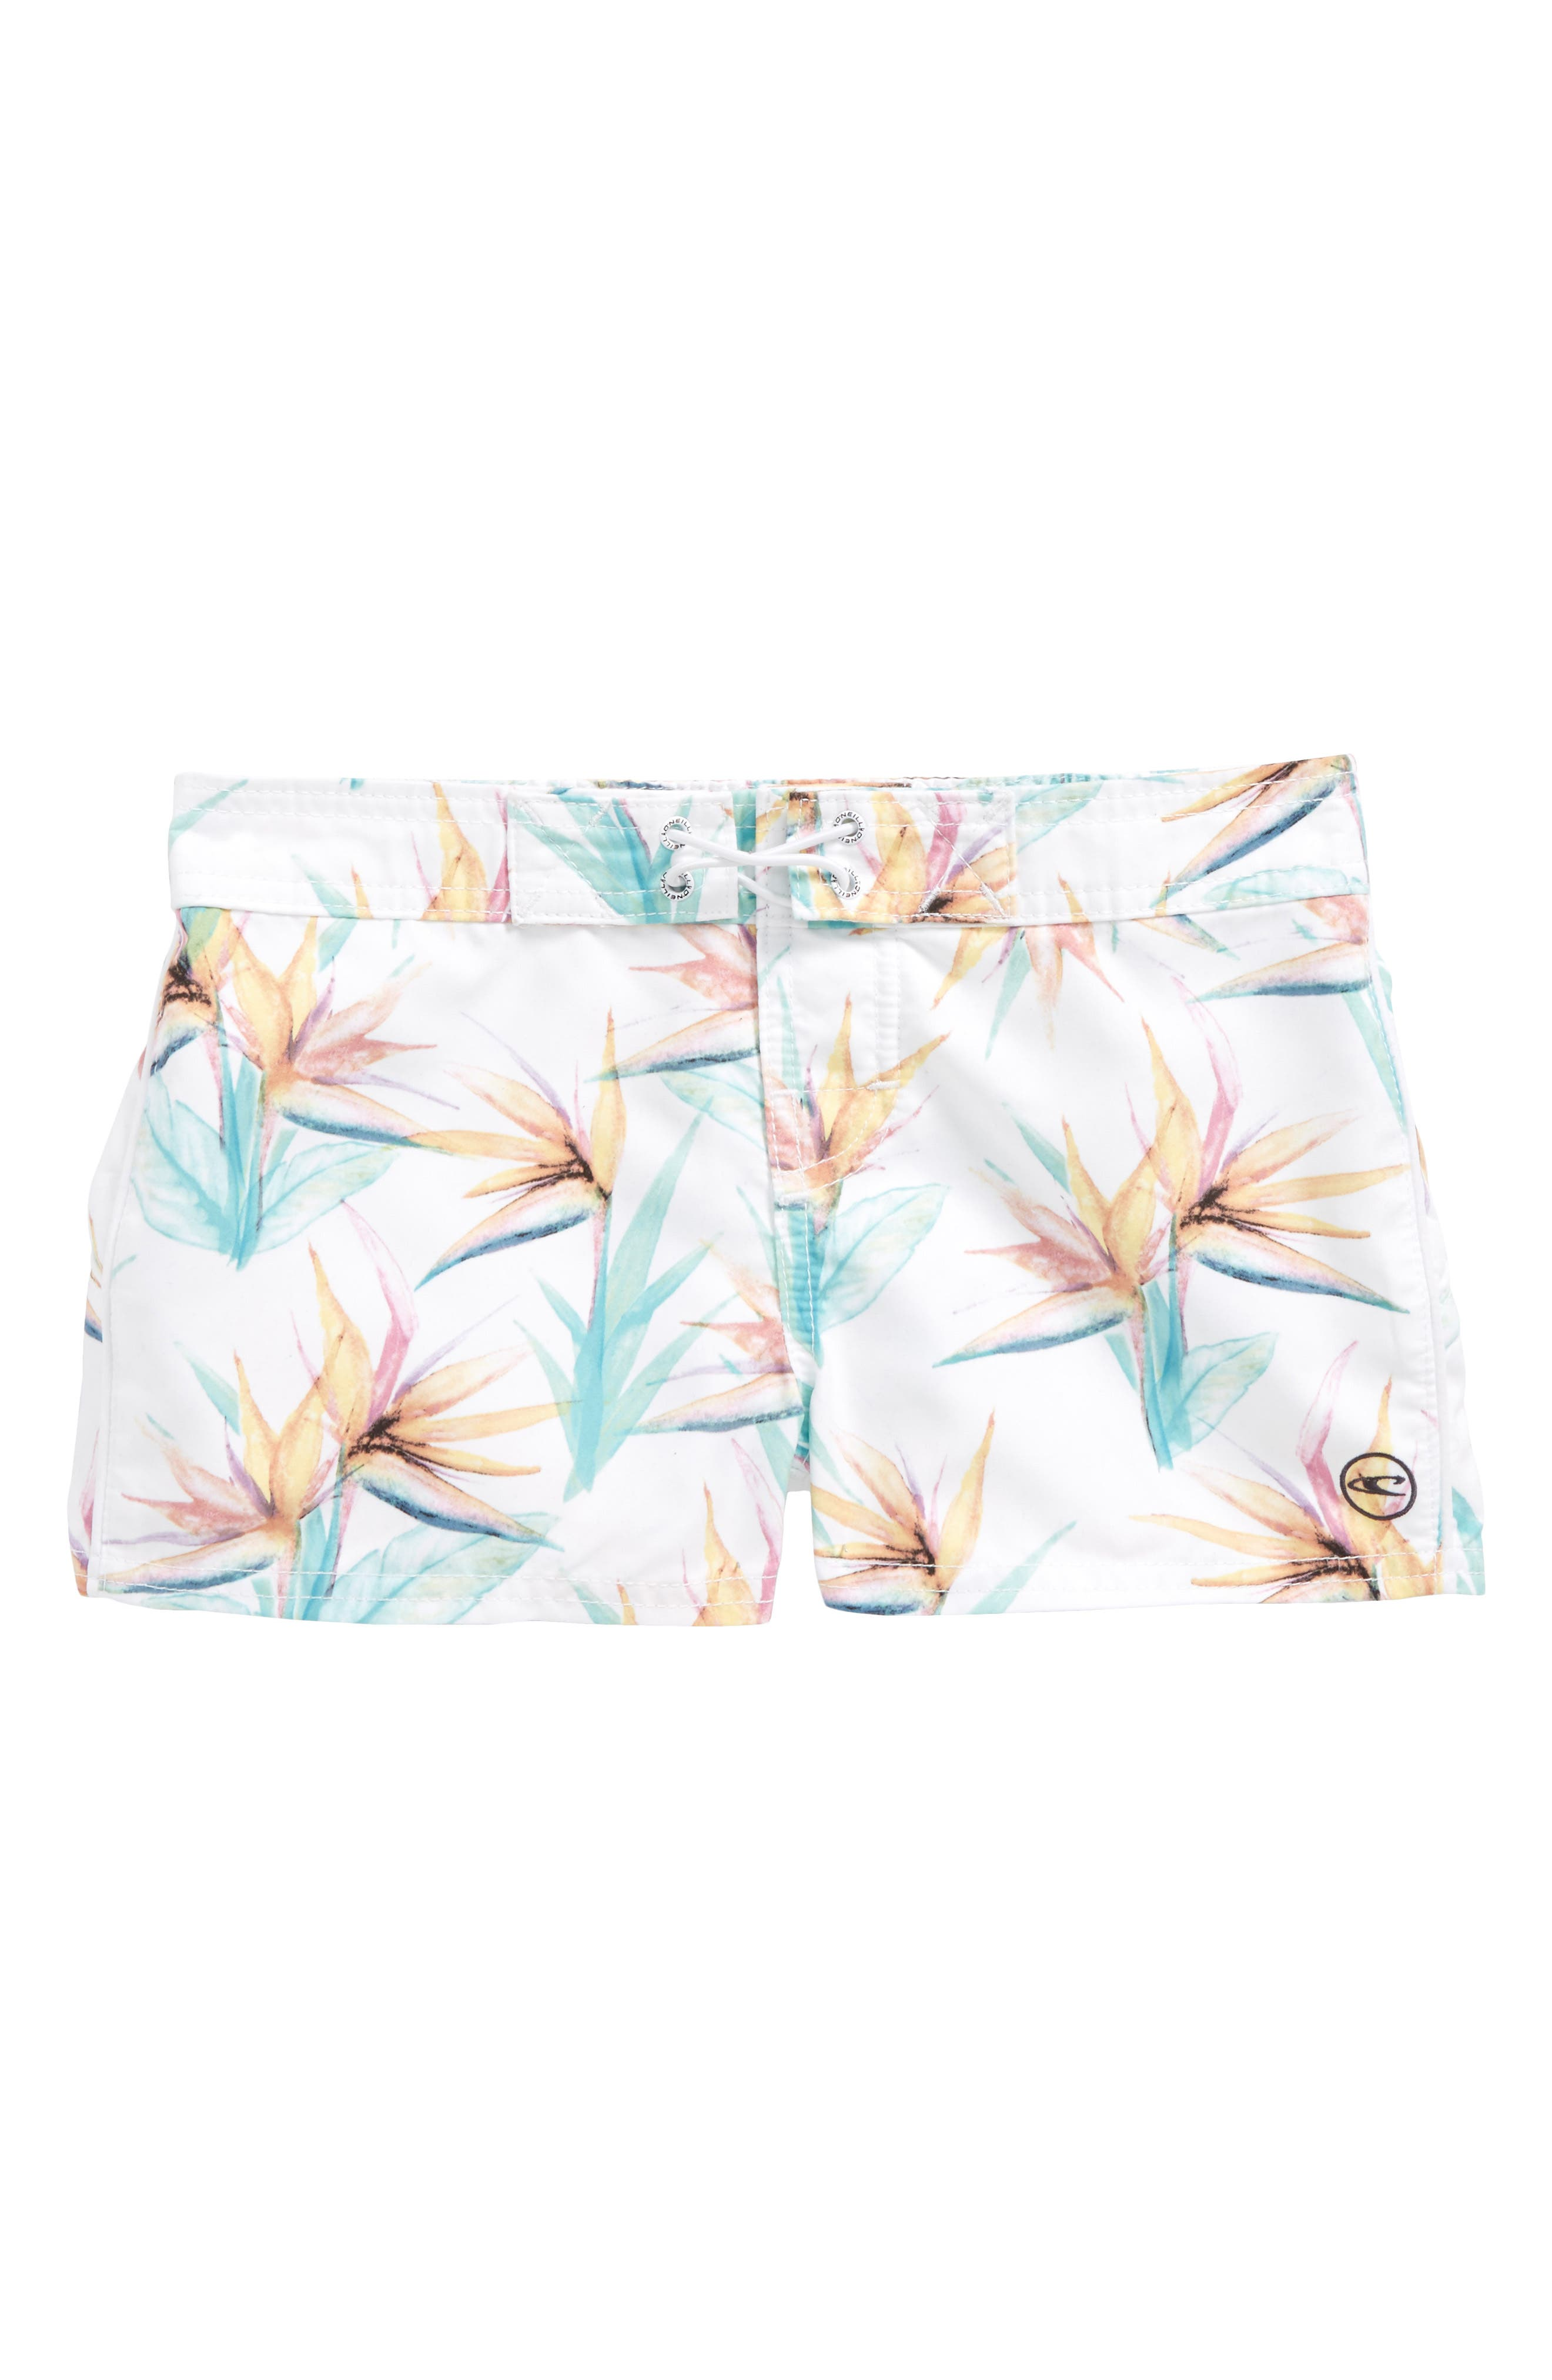 Breeze Board Shorts,                             Main thumbnail 1, color,                             White - Wht